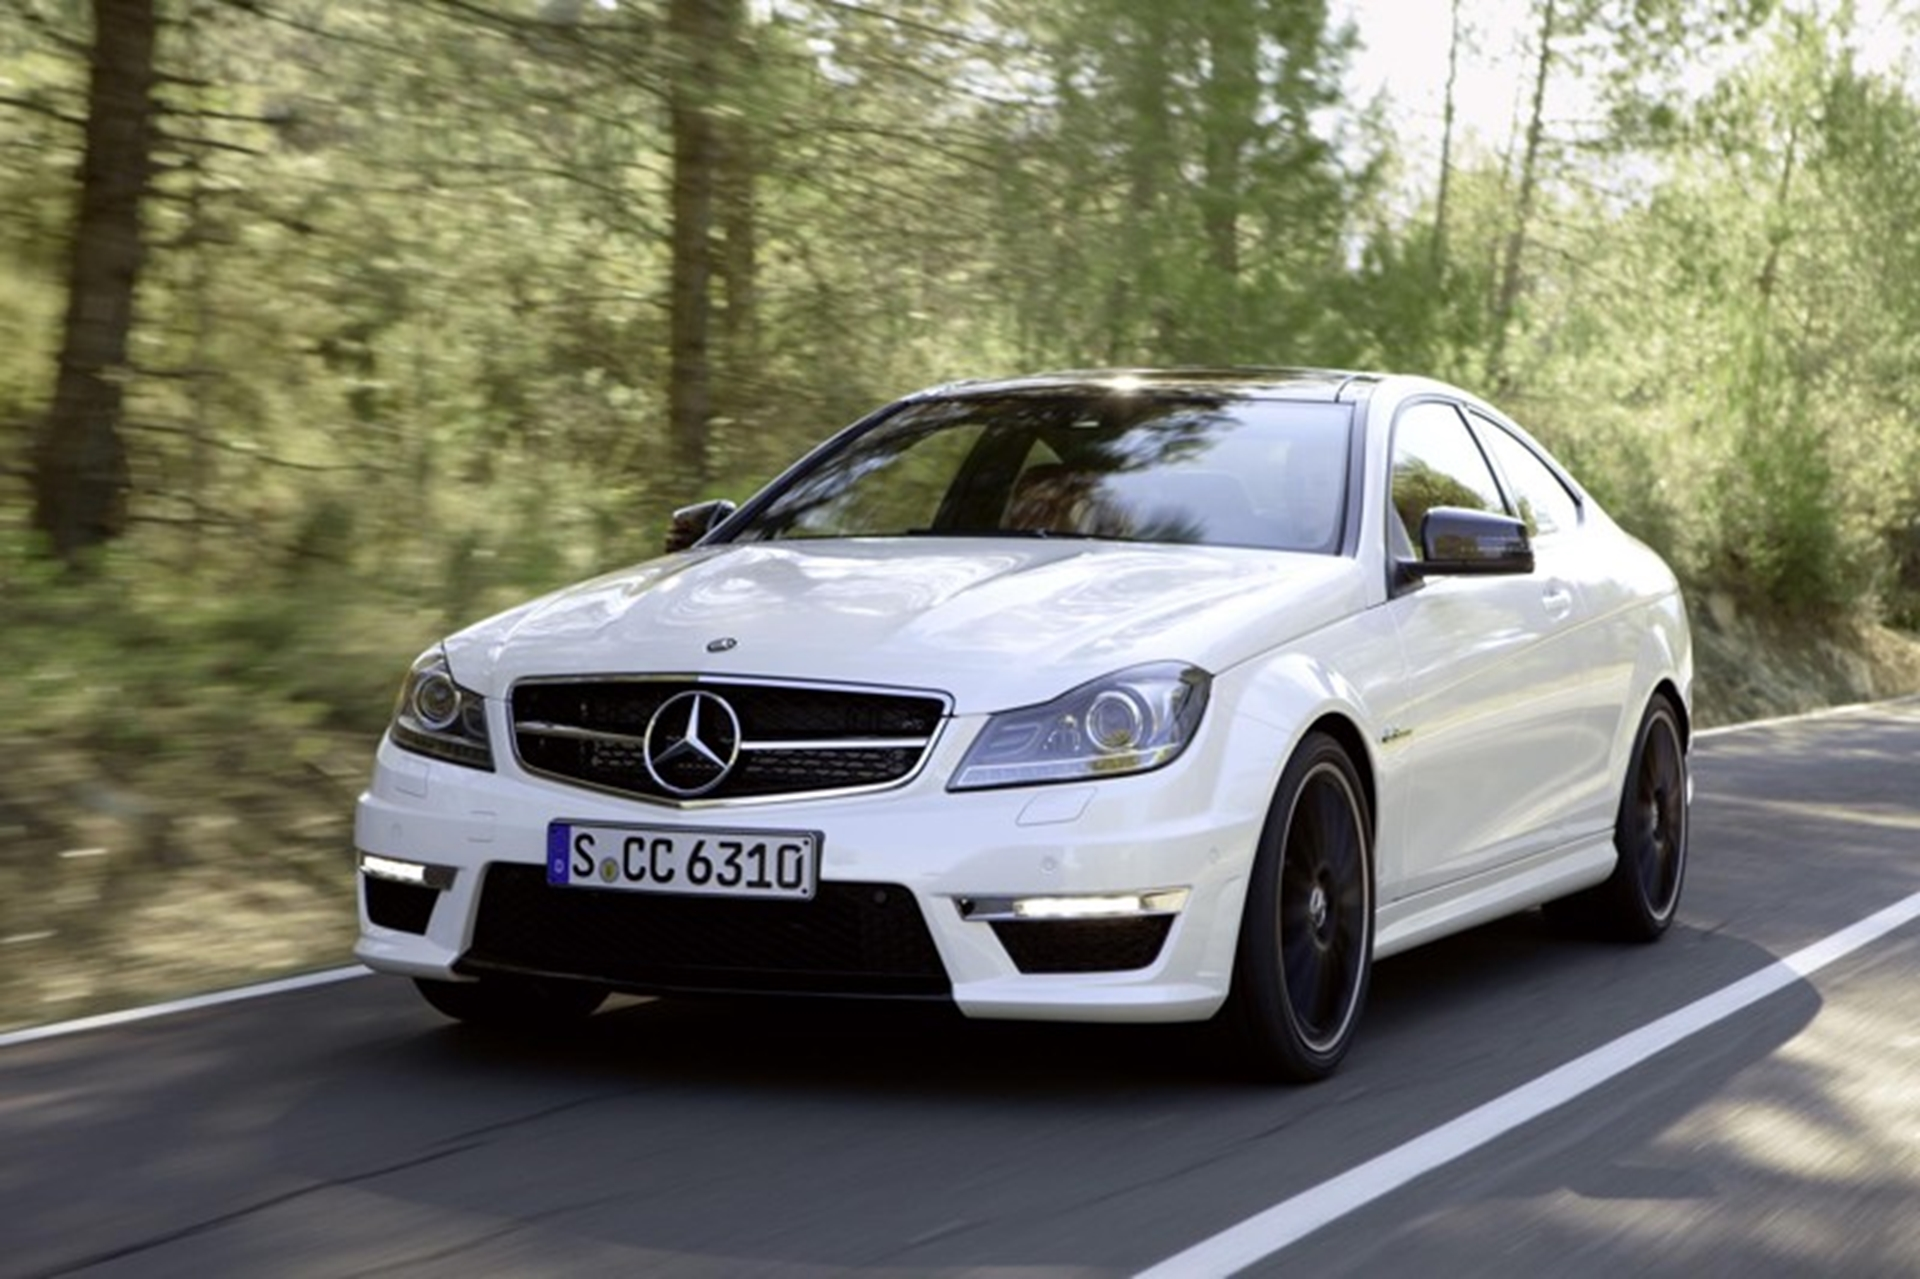 Coupe Mercedes Benz C 63 AMG Front 2011